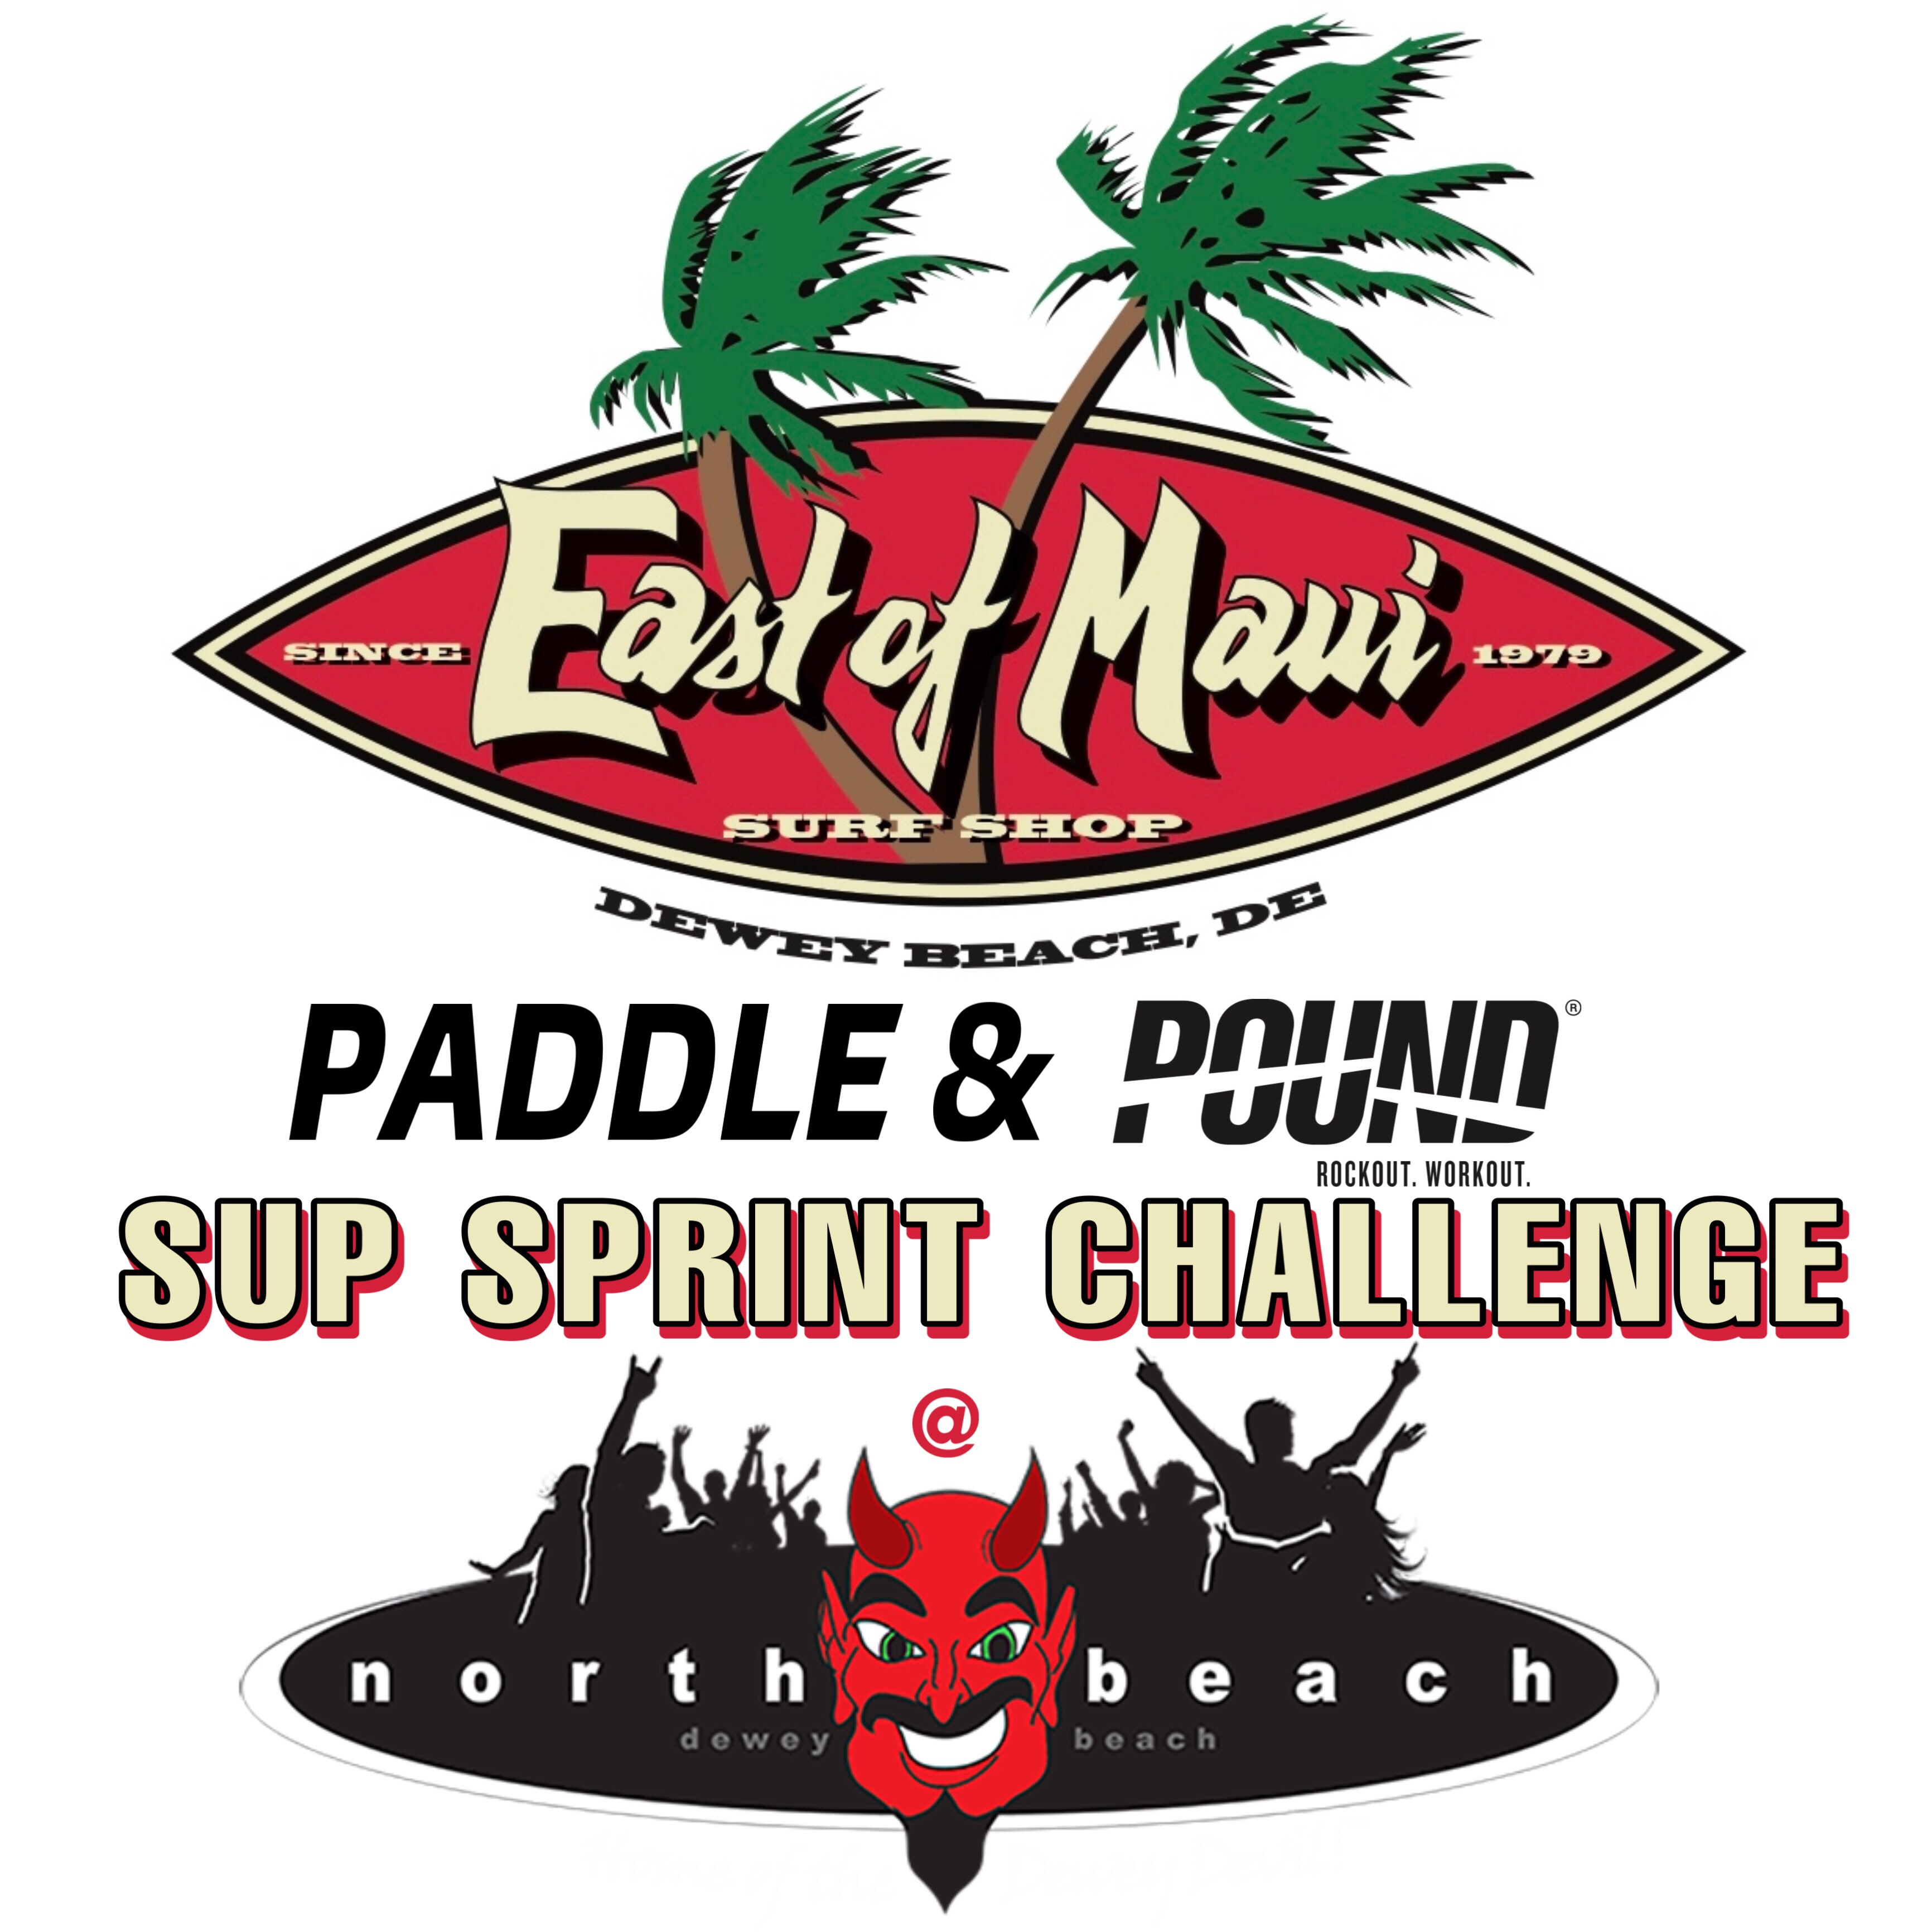 66cf29d8efbe3 East of Maui Paddle & Pound SUP Sprint Challenge @ Northbeach